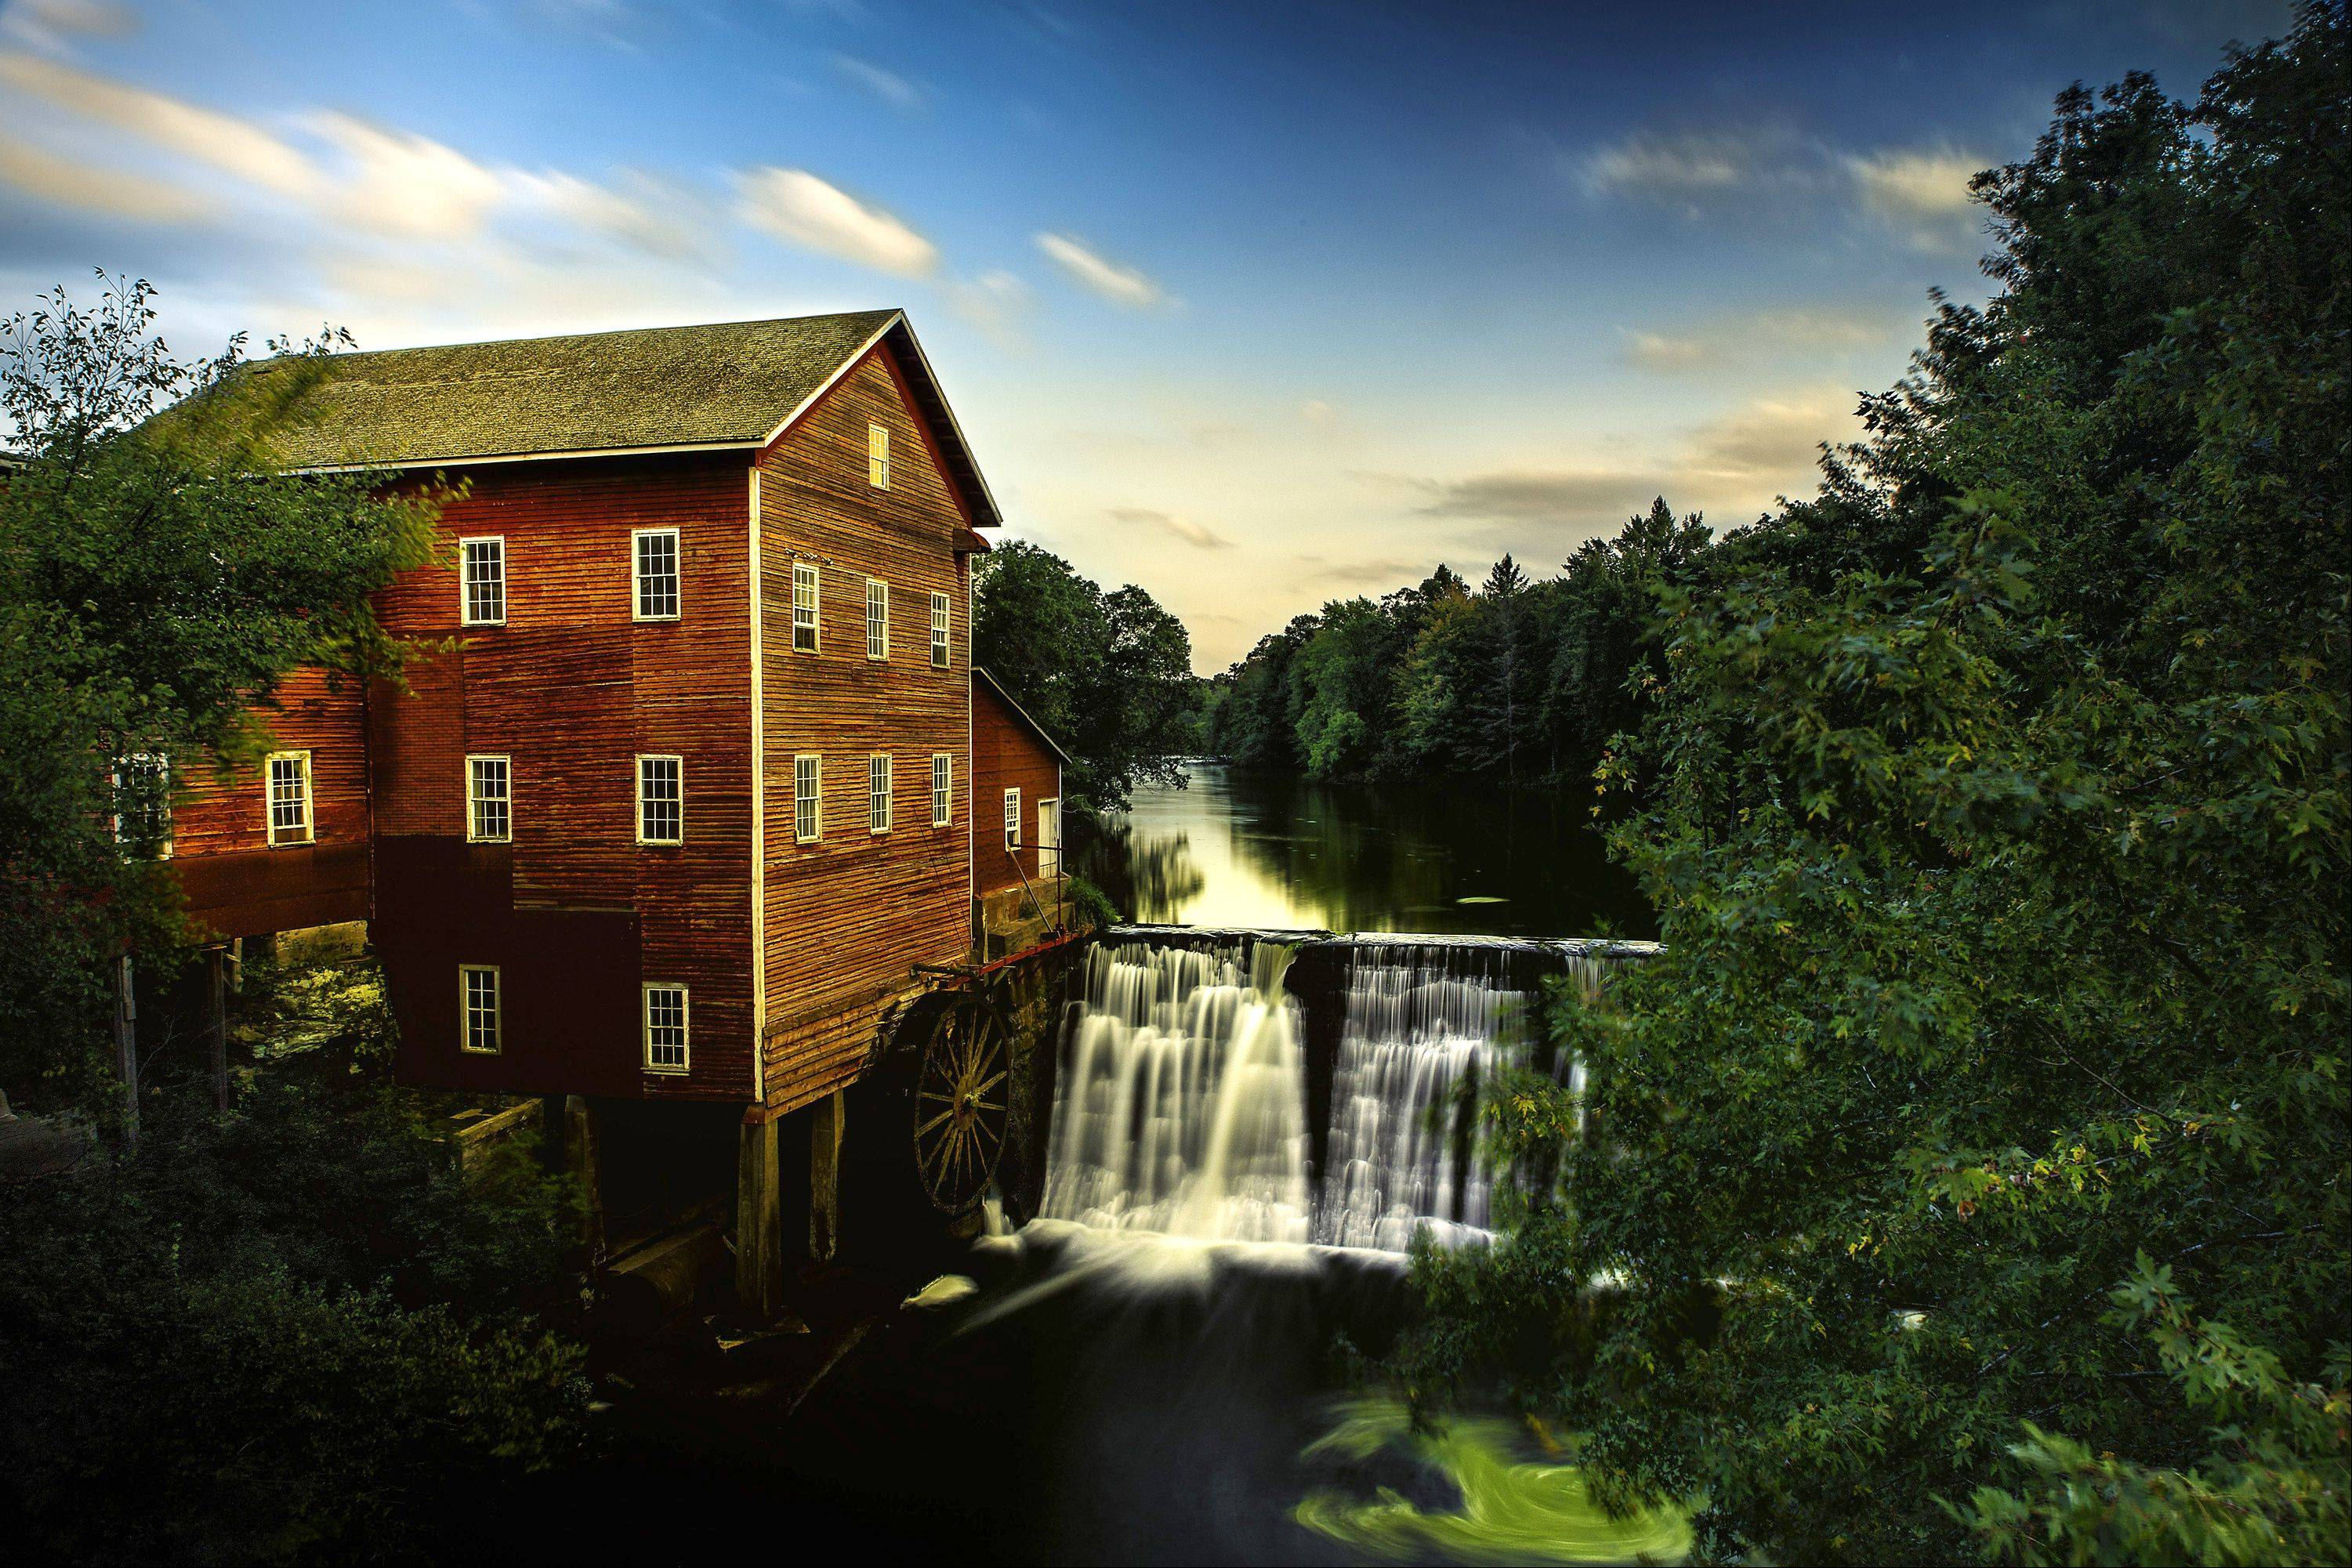 This is Dells Mill and Museum located about 4 miles north of Augusta Wisconsin and approximately 20 southeast of Eau Claire. The mill was built during the Civil War and while no longer a functioning mill is currently a museum operated by proprietor Gus Clark. This shot is a composite of 2 exposures using a variable ND filter to achieve the silky water look. It was taken shortly before sunset during a mid-September trip.